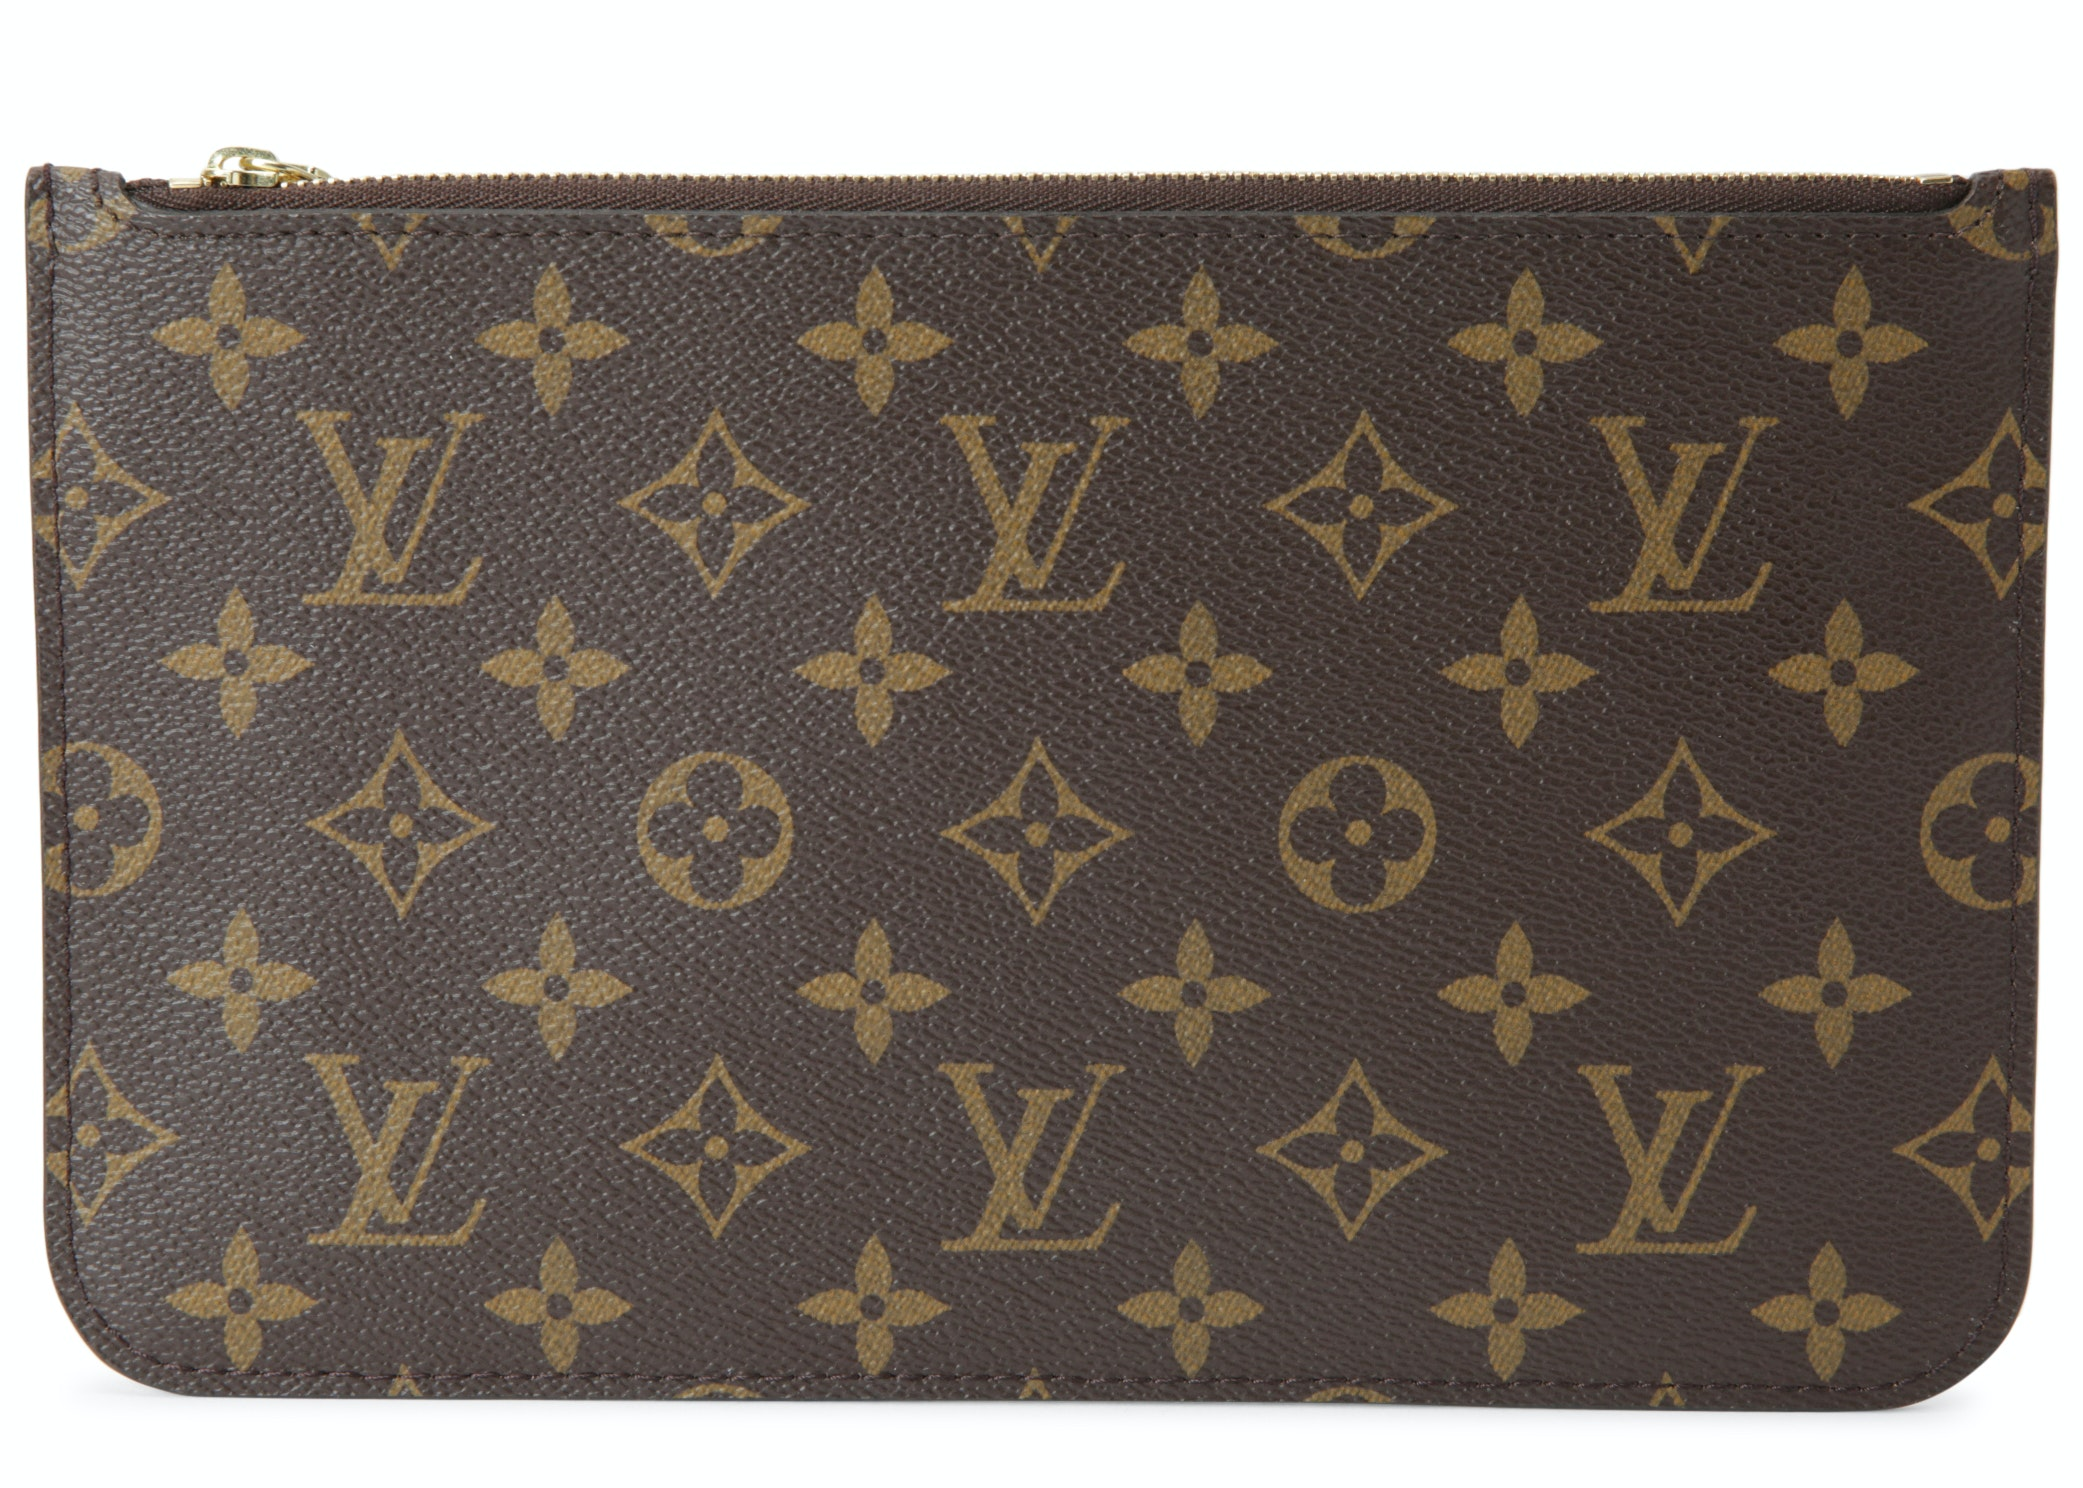 Louis Vuitton Pochette Neverfull Monogram MM GM Brown/Beige